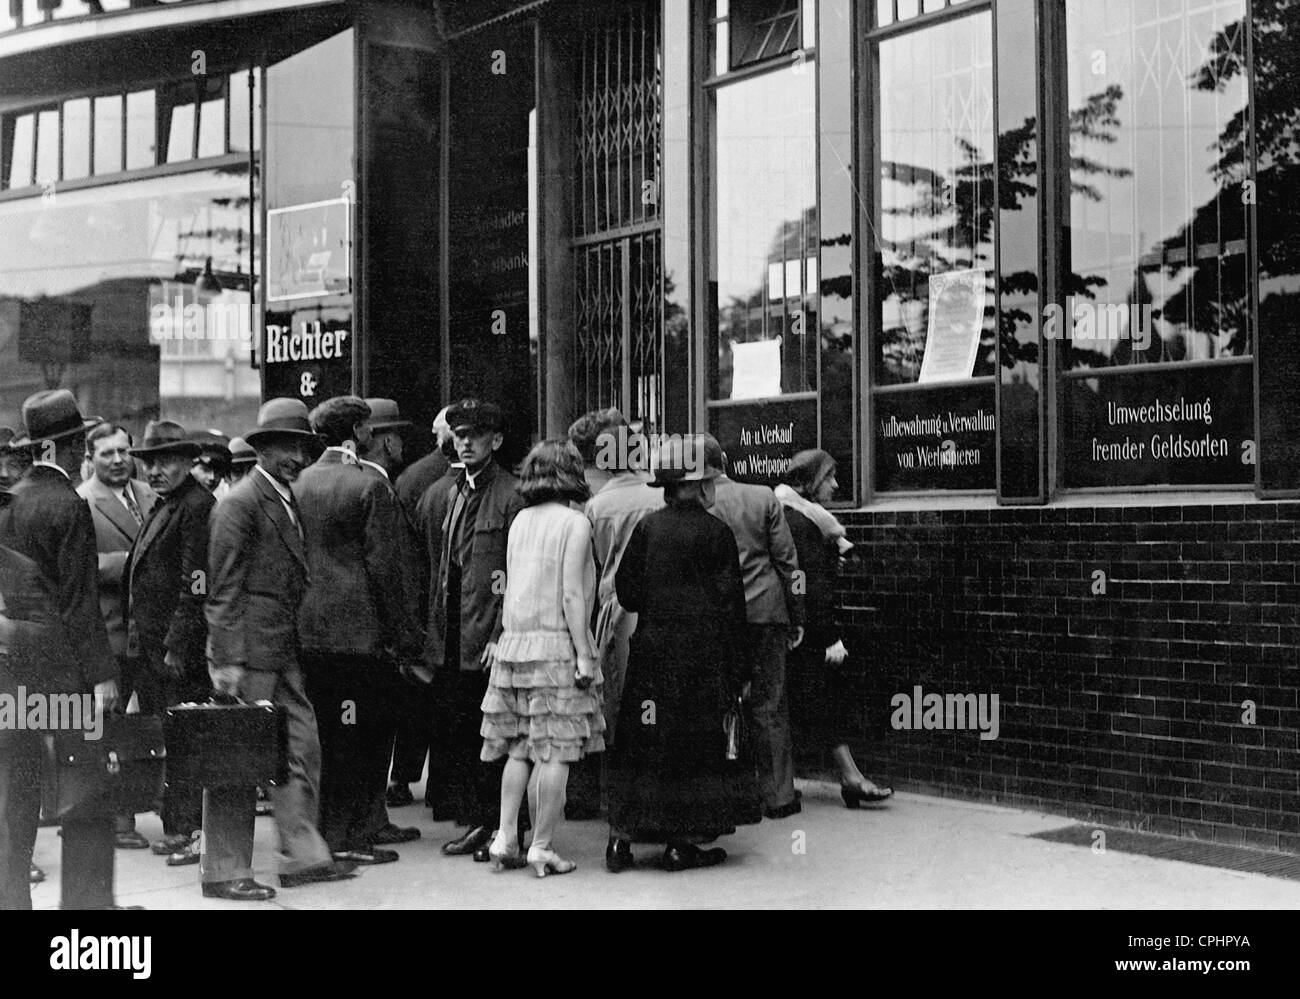 Anxious customers wait before a savings bank in Berlin following the collapse of the Danat Bank on the 13 July 1931 - Stock Image